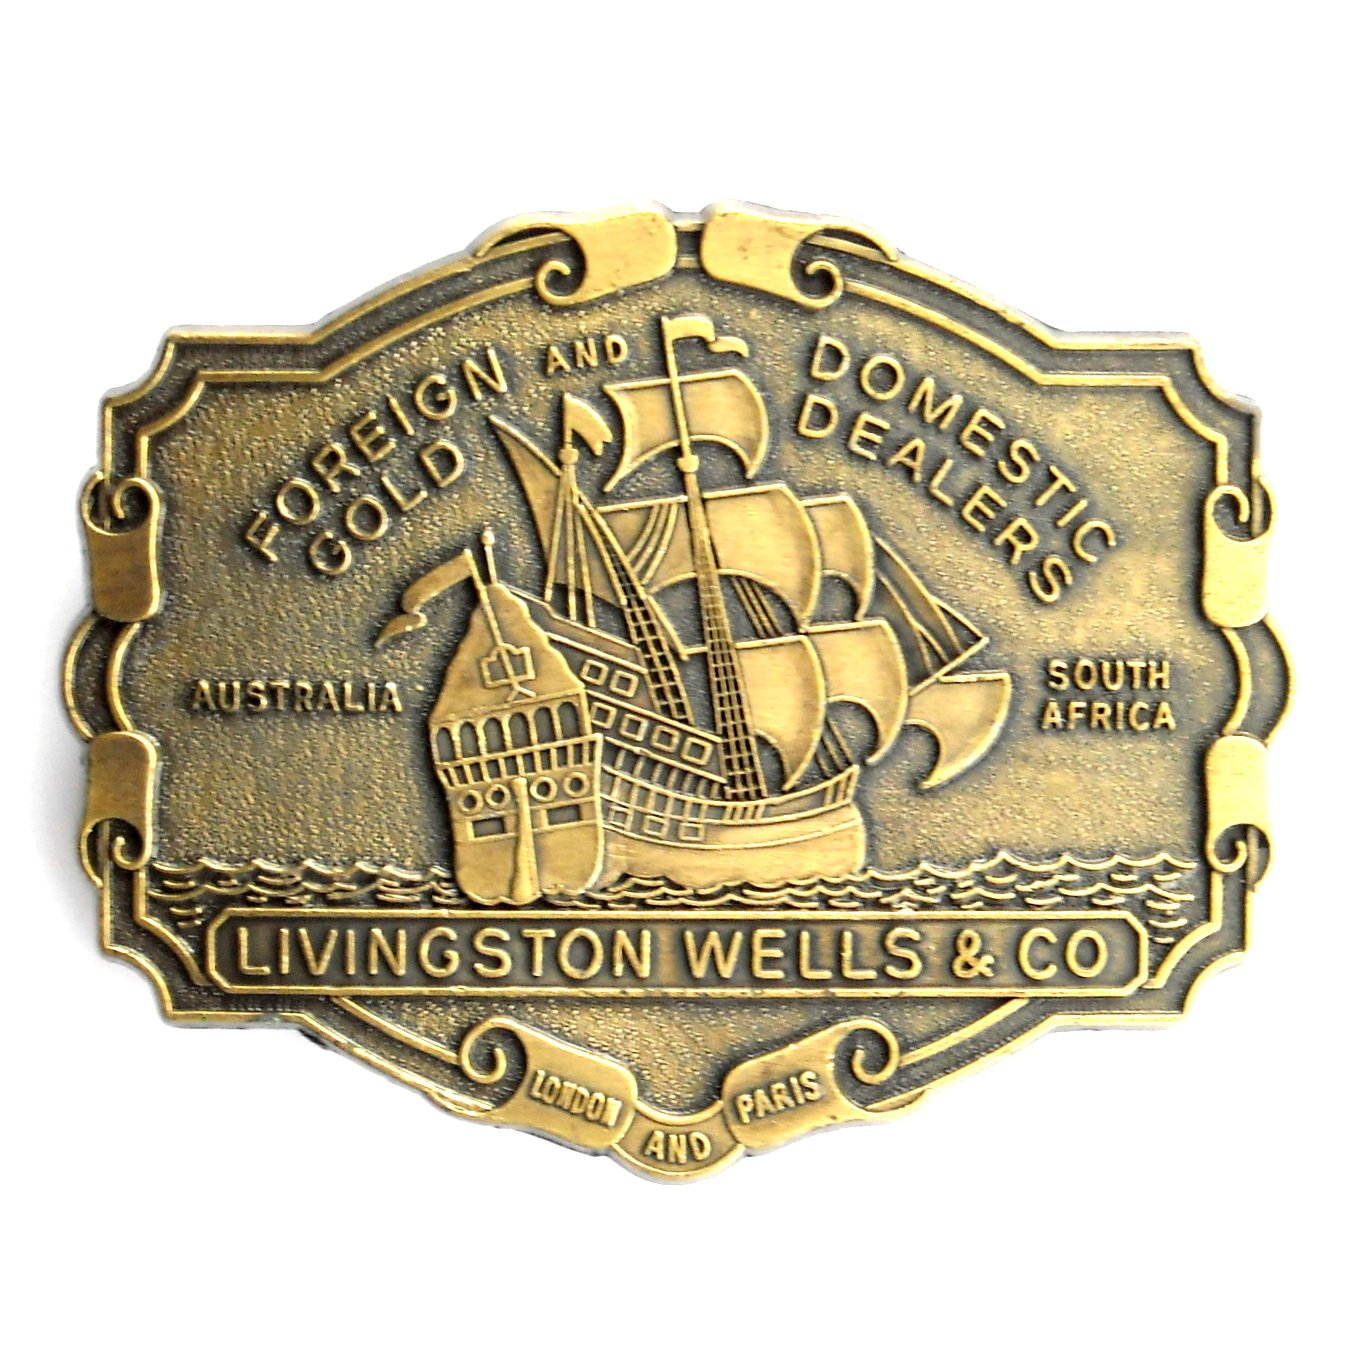 Gold Dealers Foreign Domestic Livingston Wells Belt Buckle